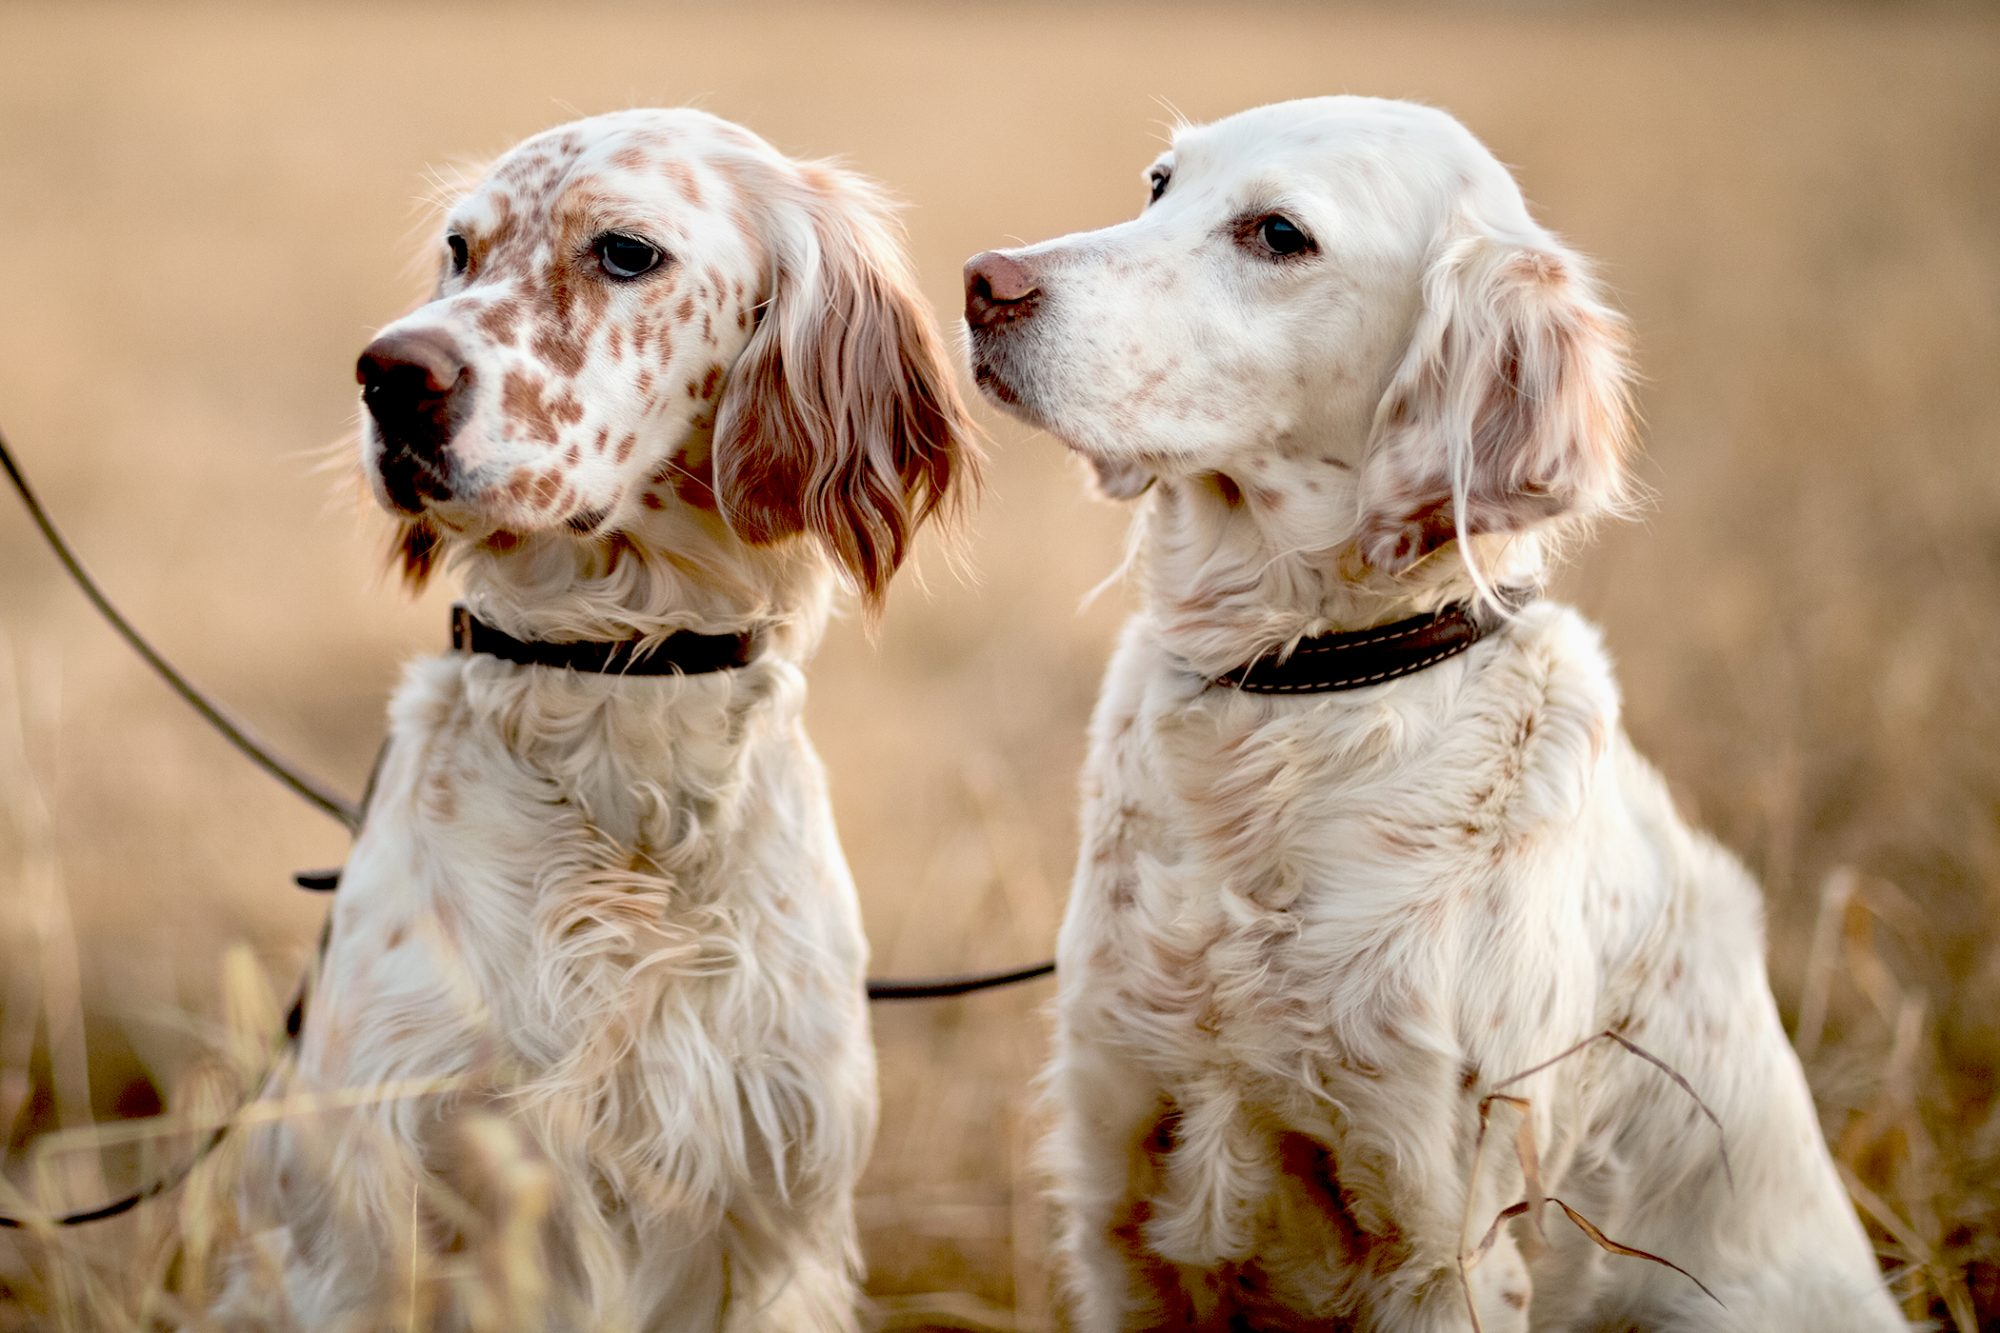 English Setter Dog Breed Information and Characteristics | Daily Paws